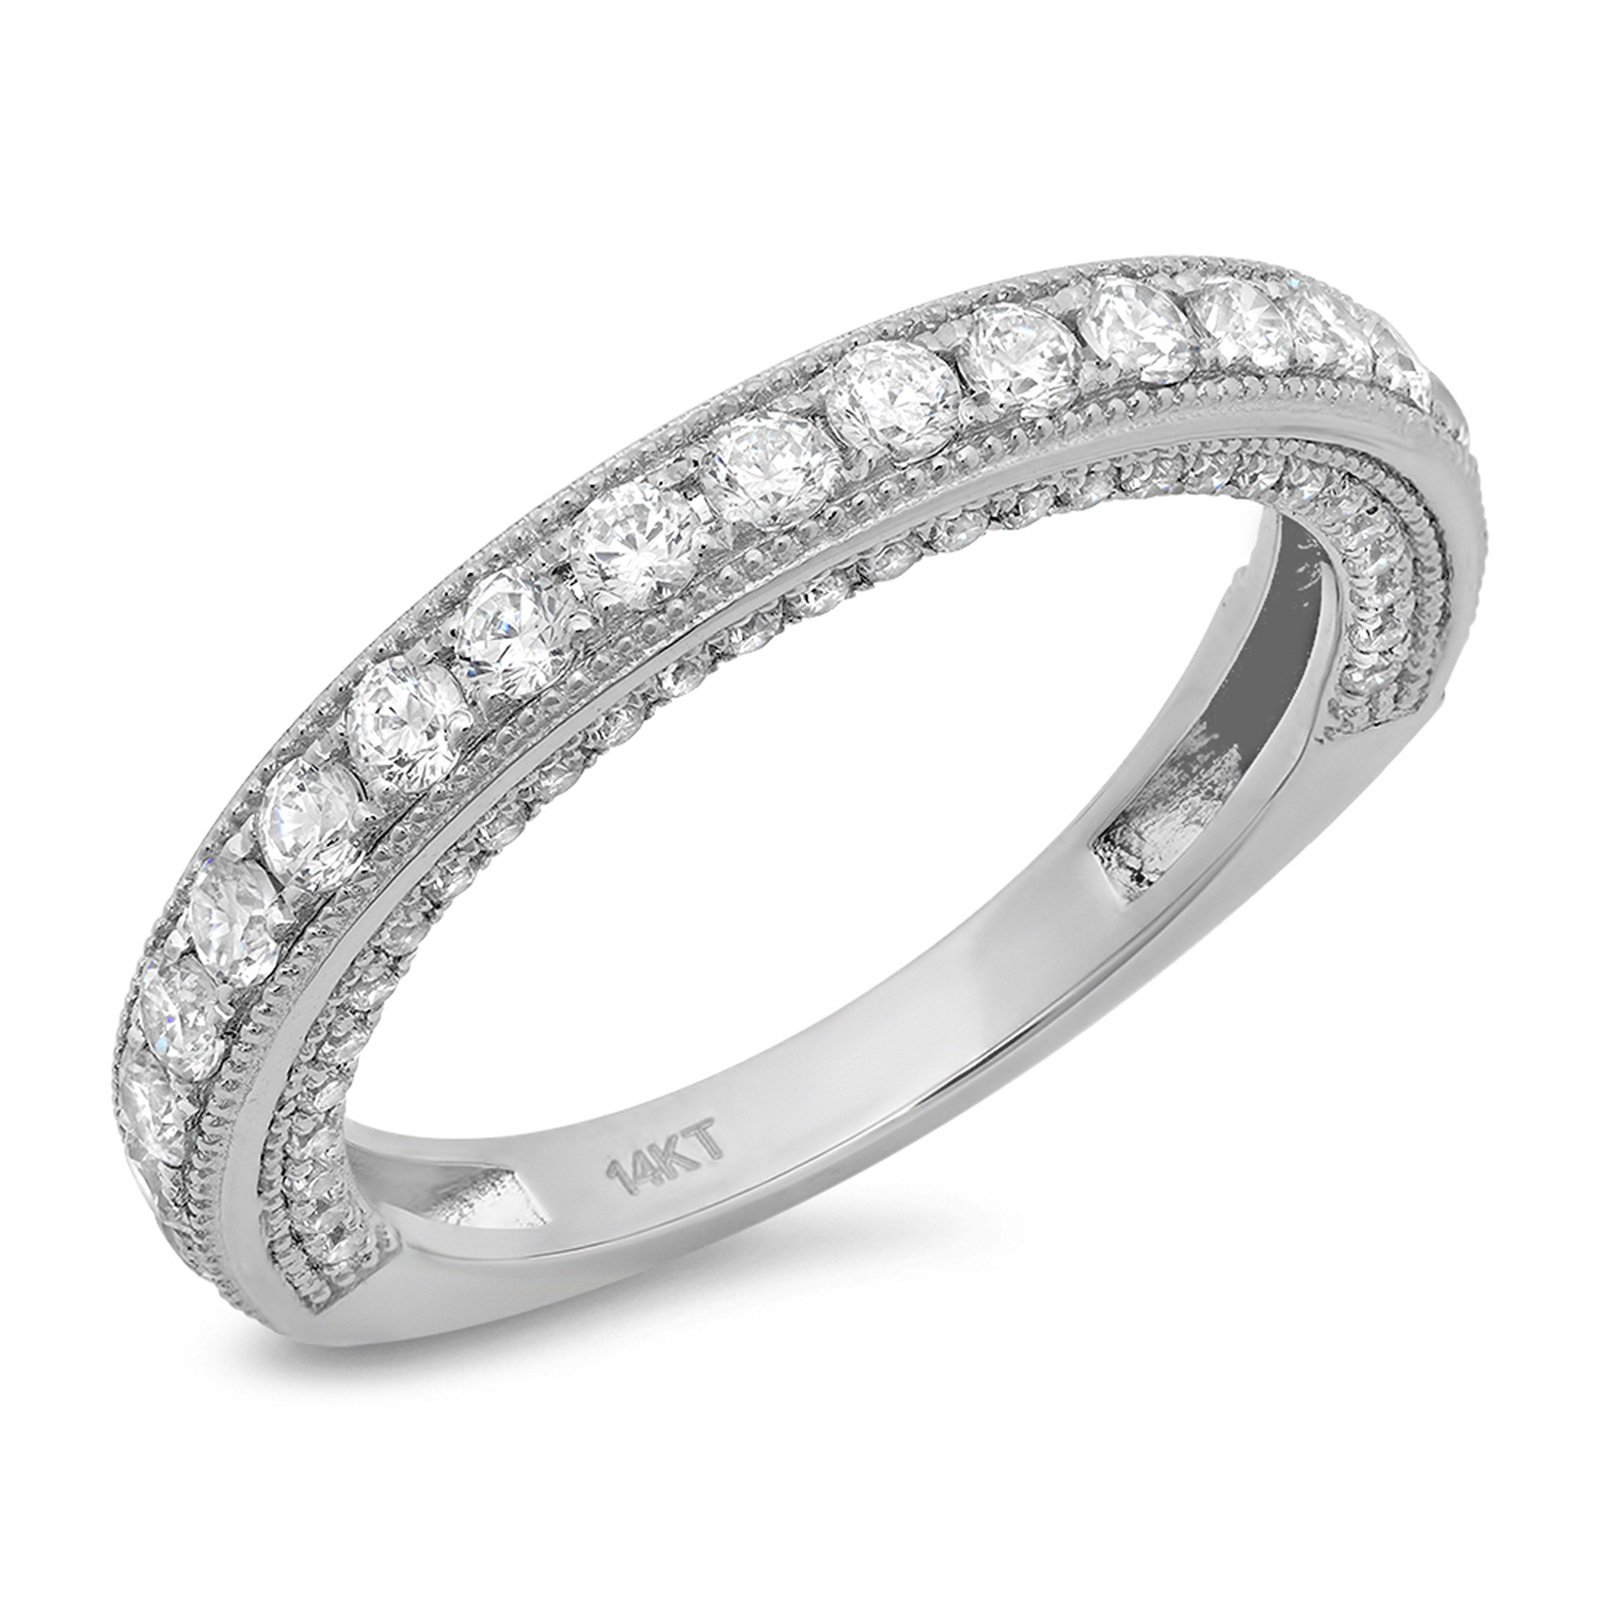 Clara Pucci 1.10 CT Round Cut CZ Pave Set Wedding Bridal Eternity Engagement Band Ring 14k White Gold, Size 6.5 by Clara Pucci